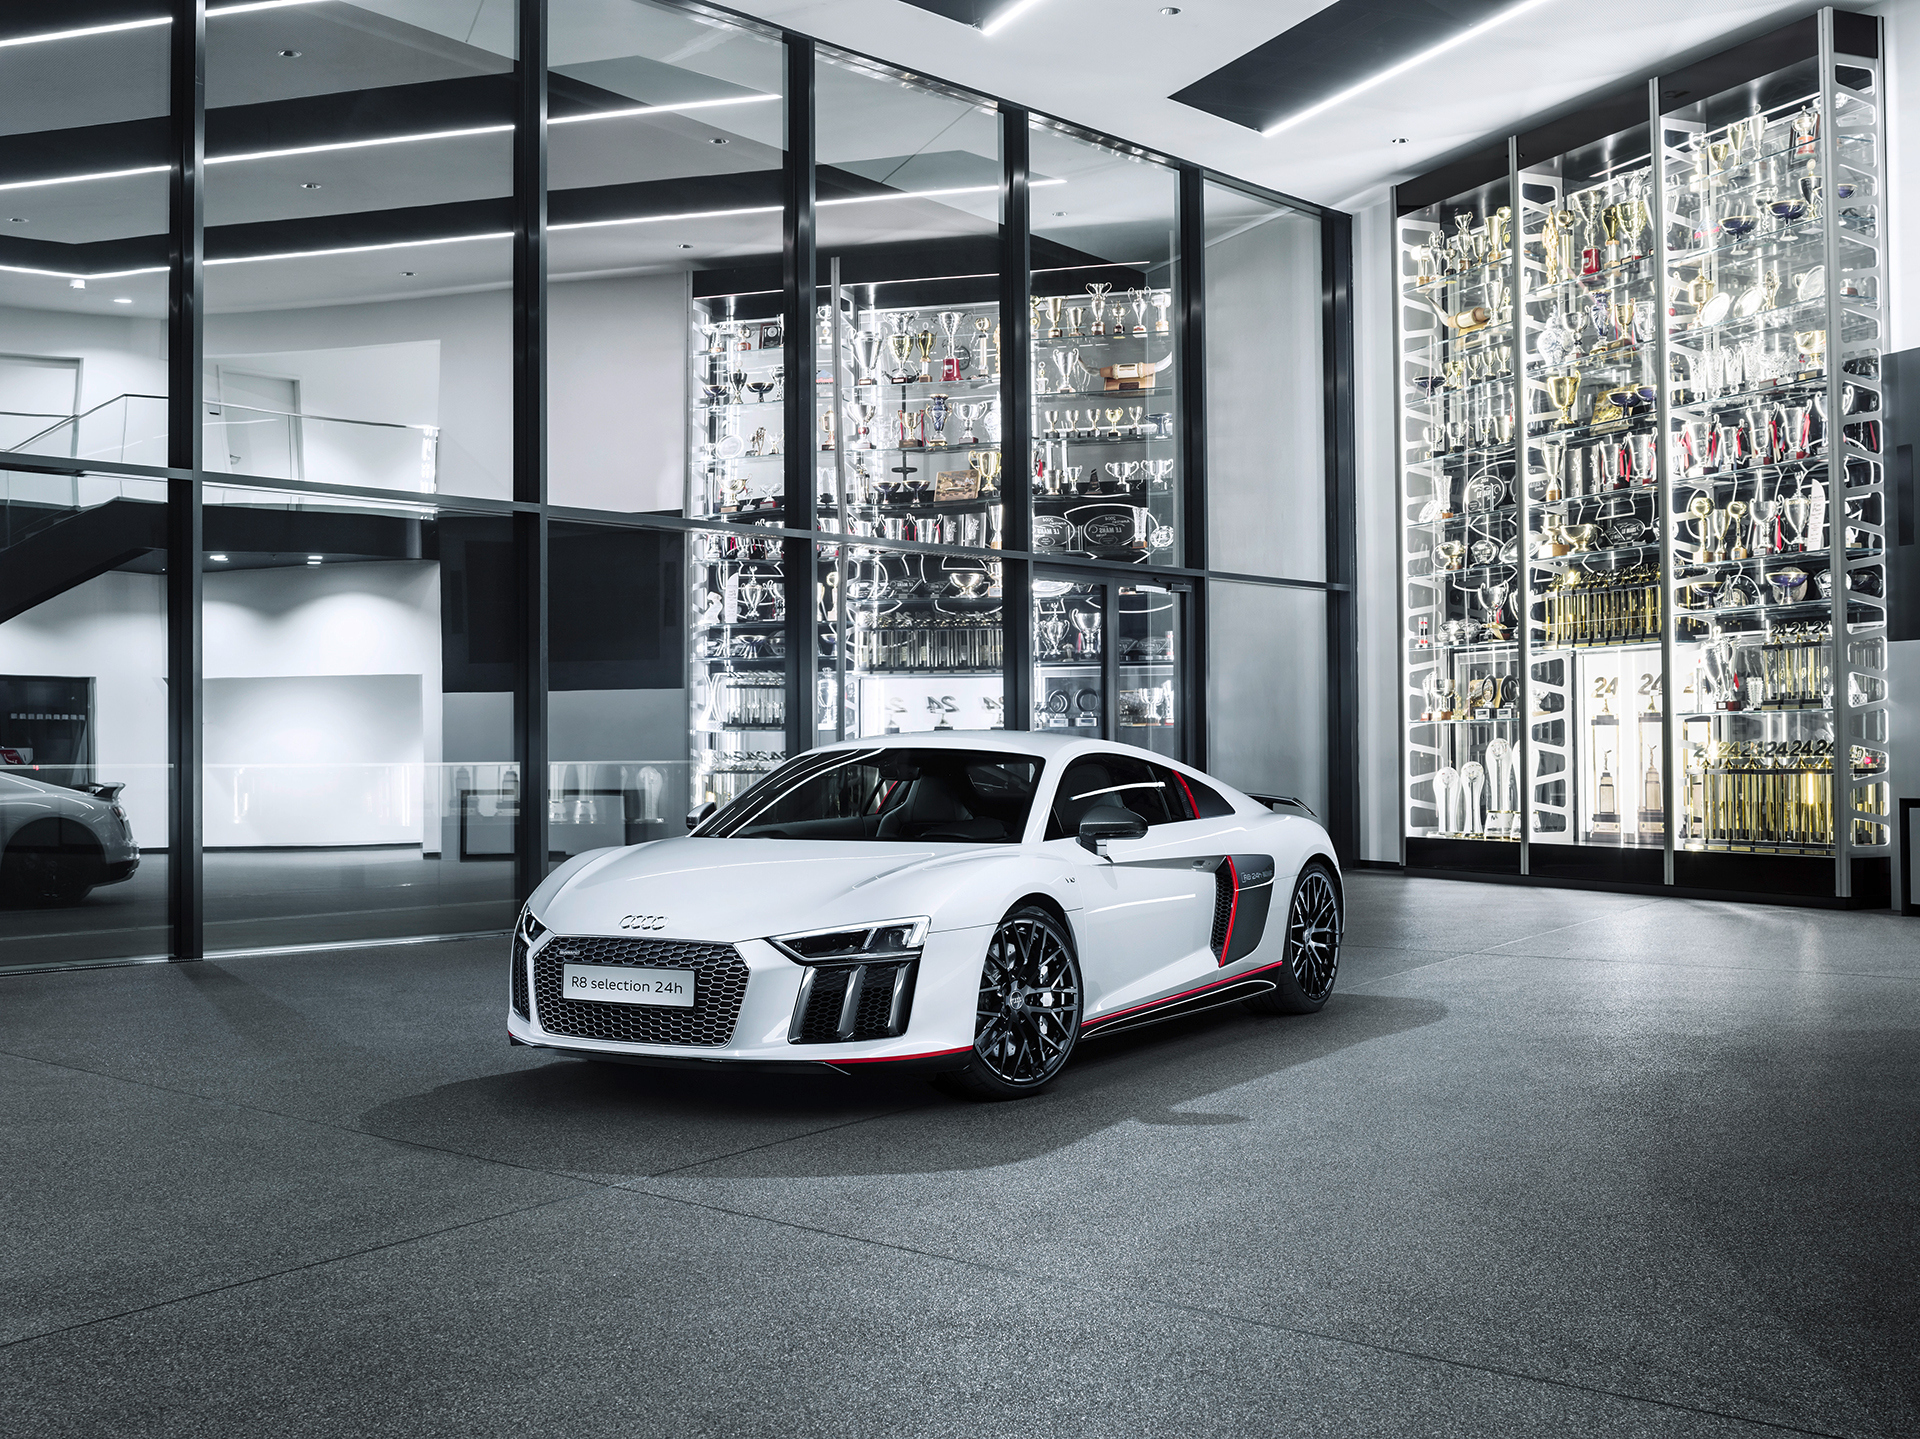 Audi R8 V10 selection 24h - 2016 - front side-face / profil avant